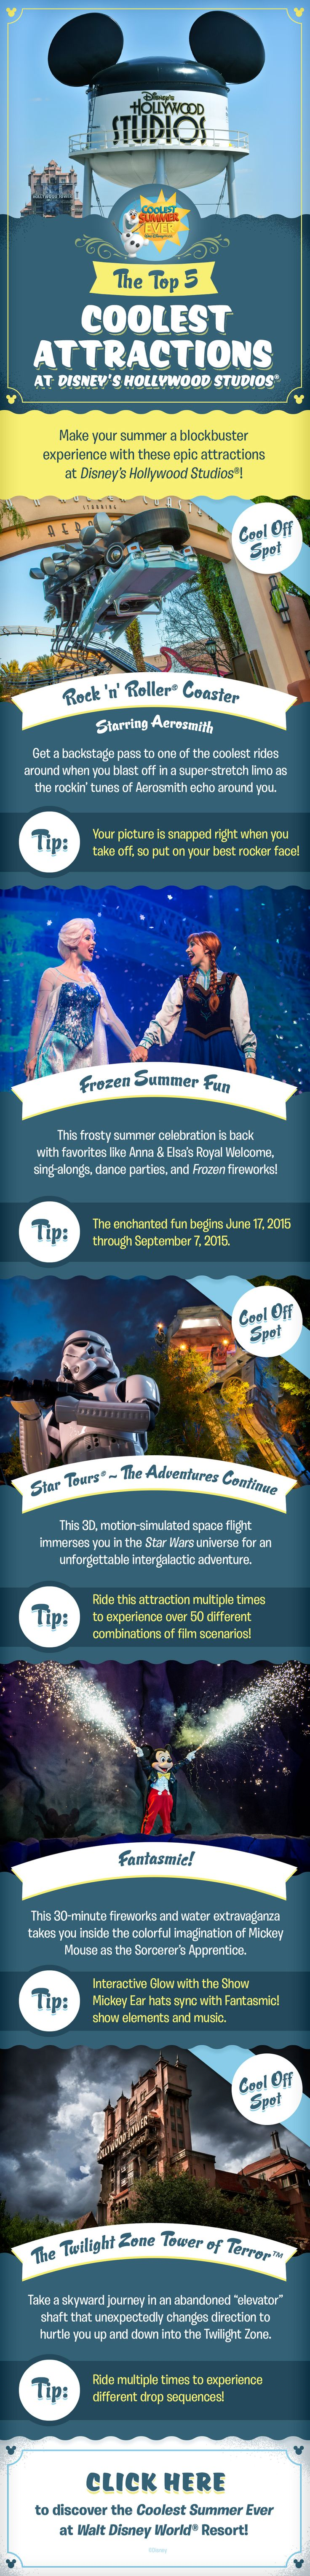 Check out the Top 5 Coolest Attractions at Disney's Hollywood Studios and get ready to have the Coolest Summer Ever as you plan your family vacation at Walt Disney World! Whether you are craving thrills on Rock 'n' Roller Coaster or Tower of Terror, looking travel the galaxy on Star Tours, or wanting to check out Fantasmic! and Frozen Summer Fun, there's something for everyone in your family to enjoy!